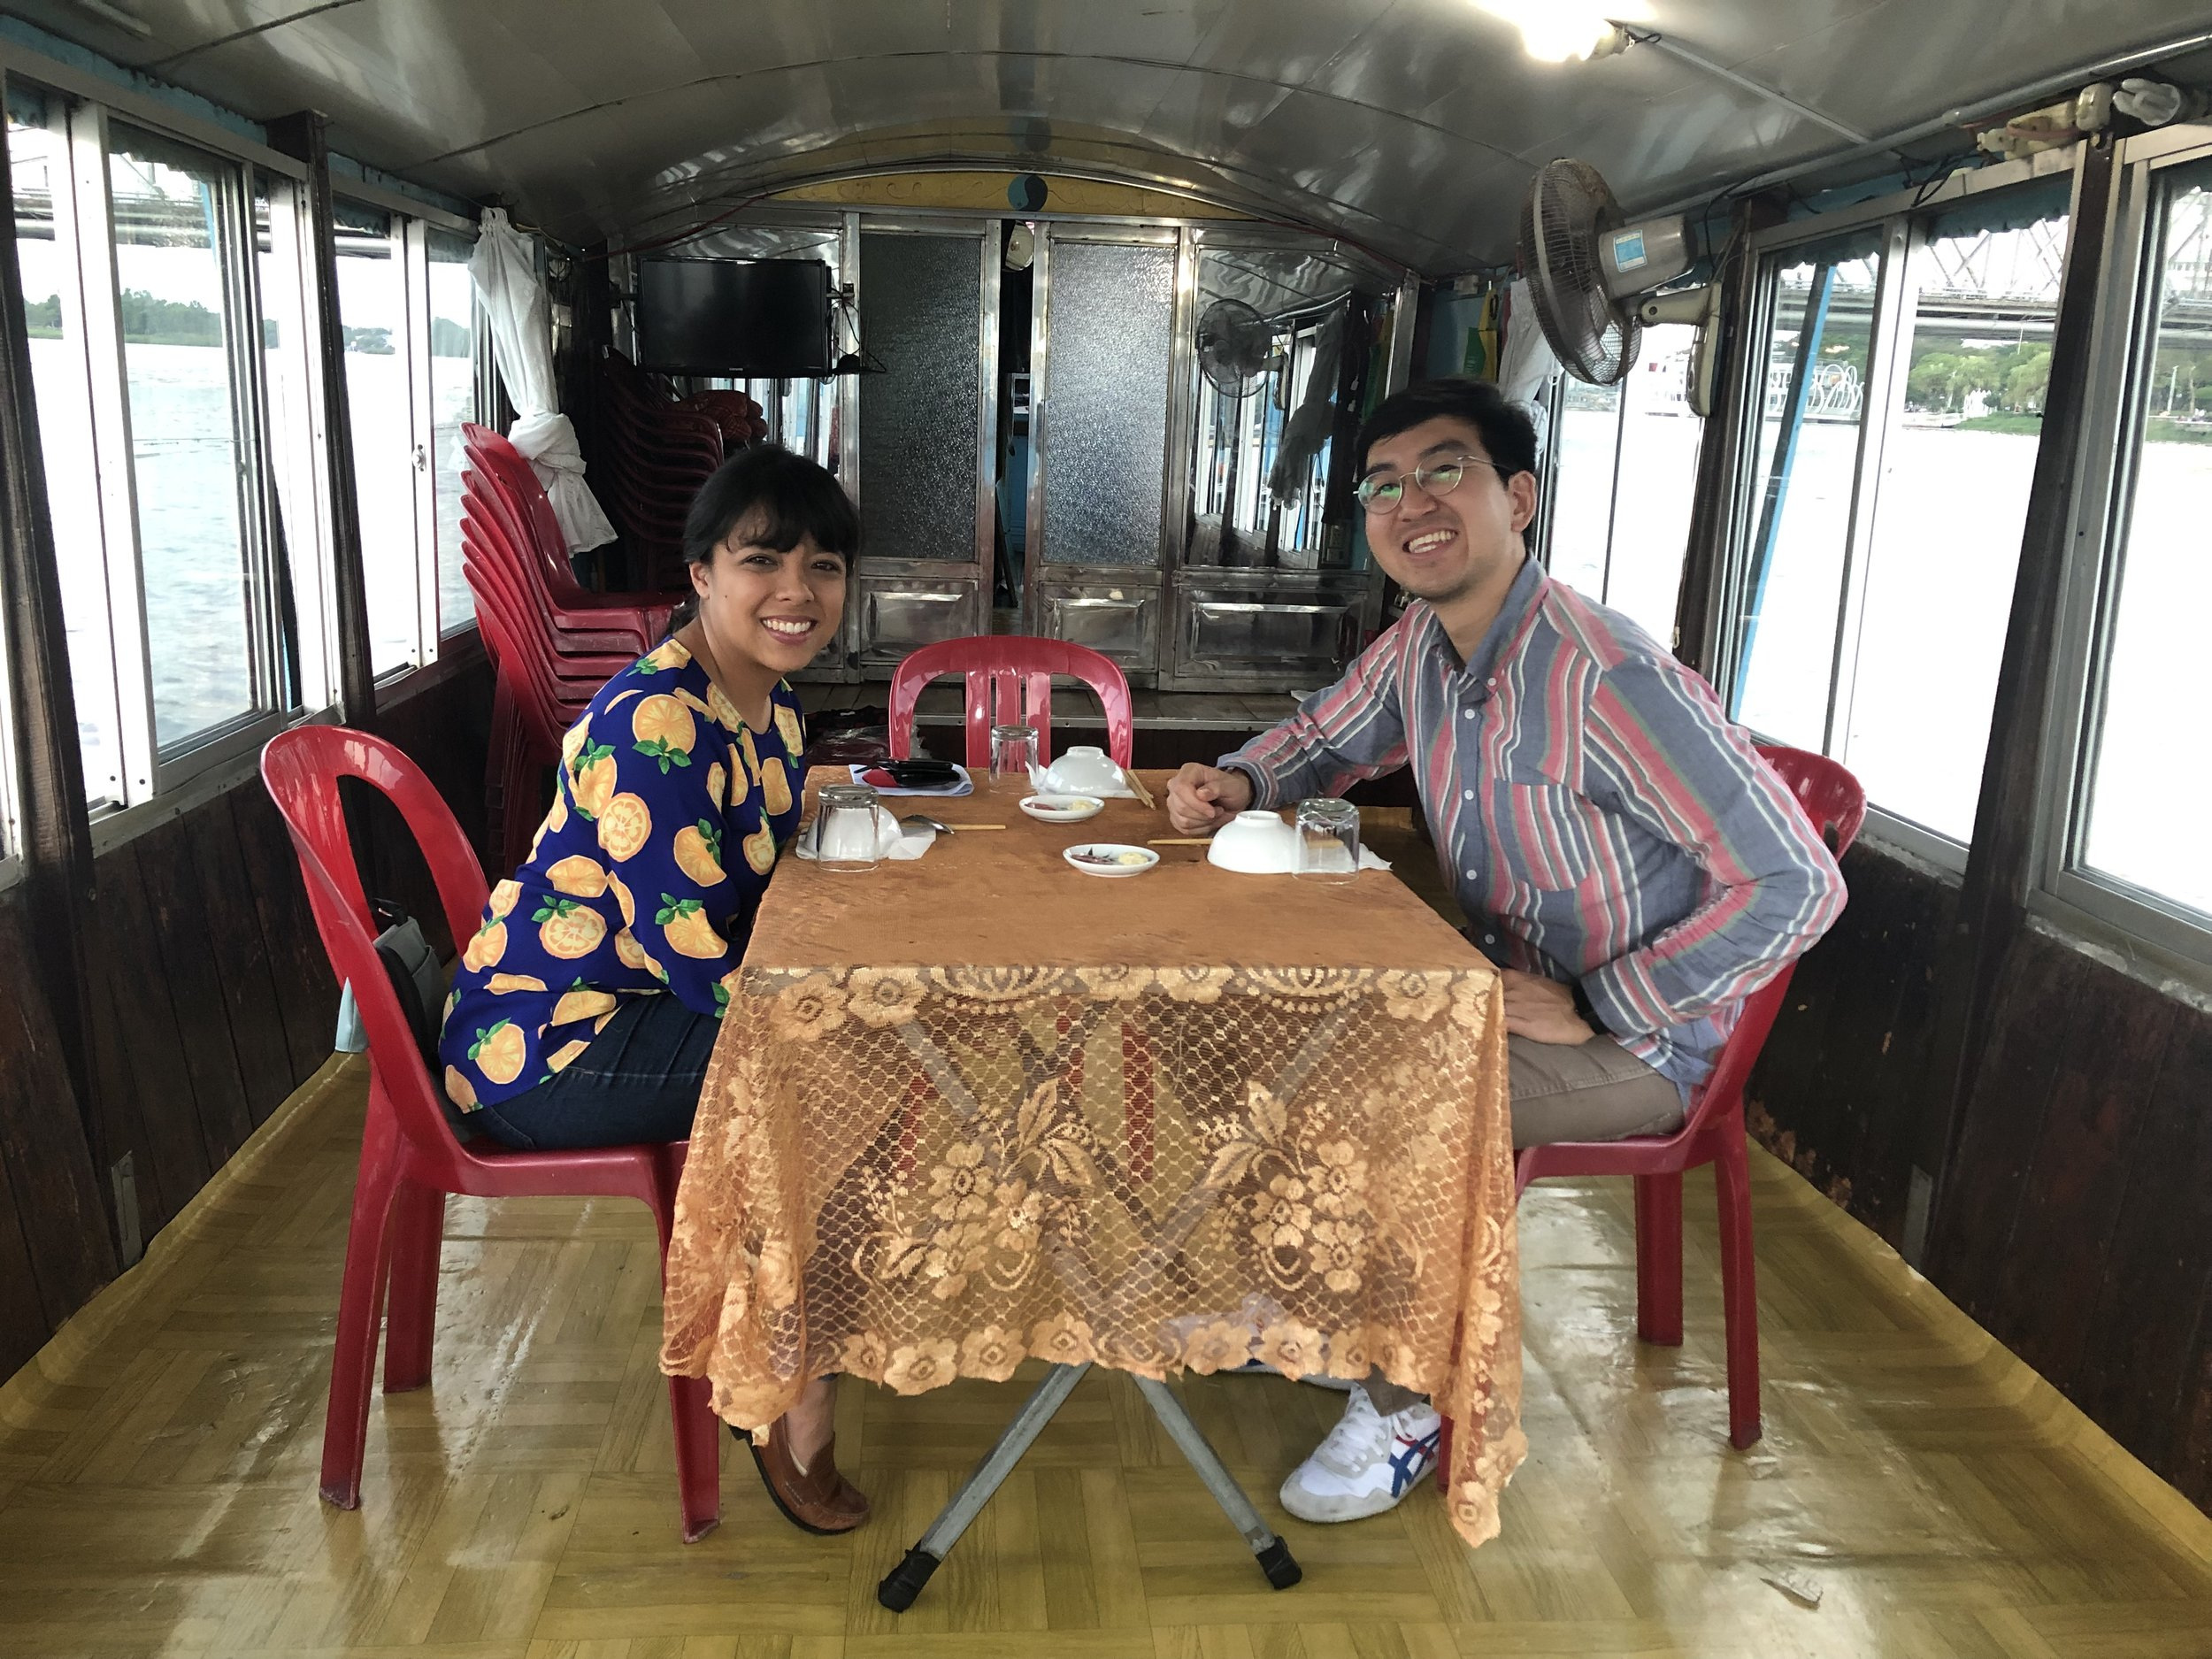 Perfume River Private Dinner Cruise